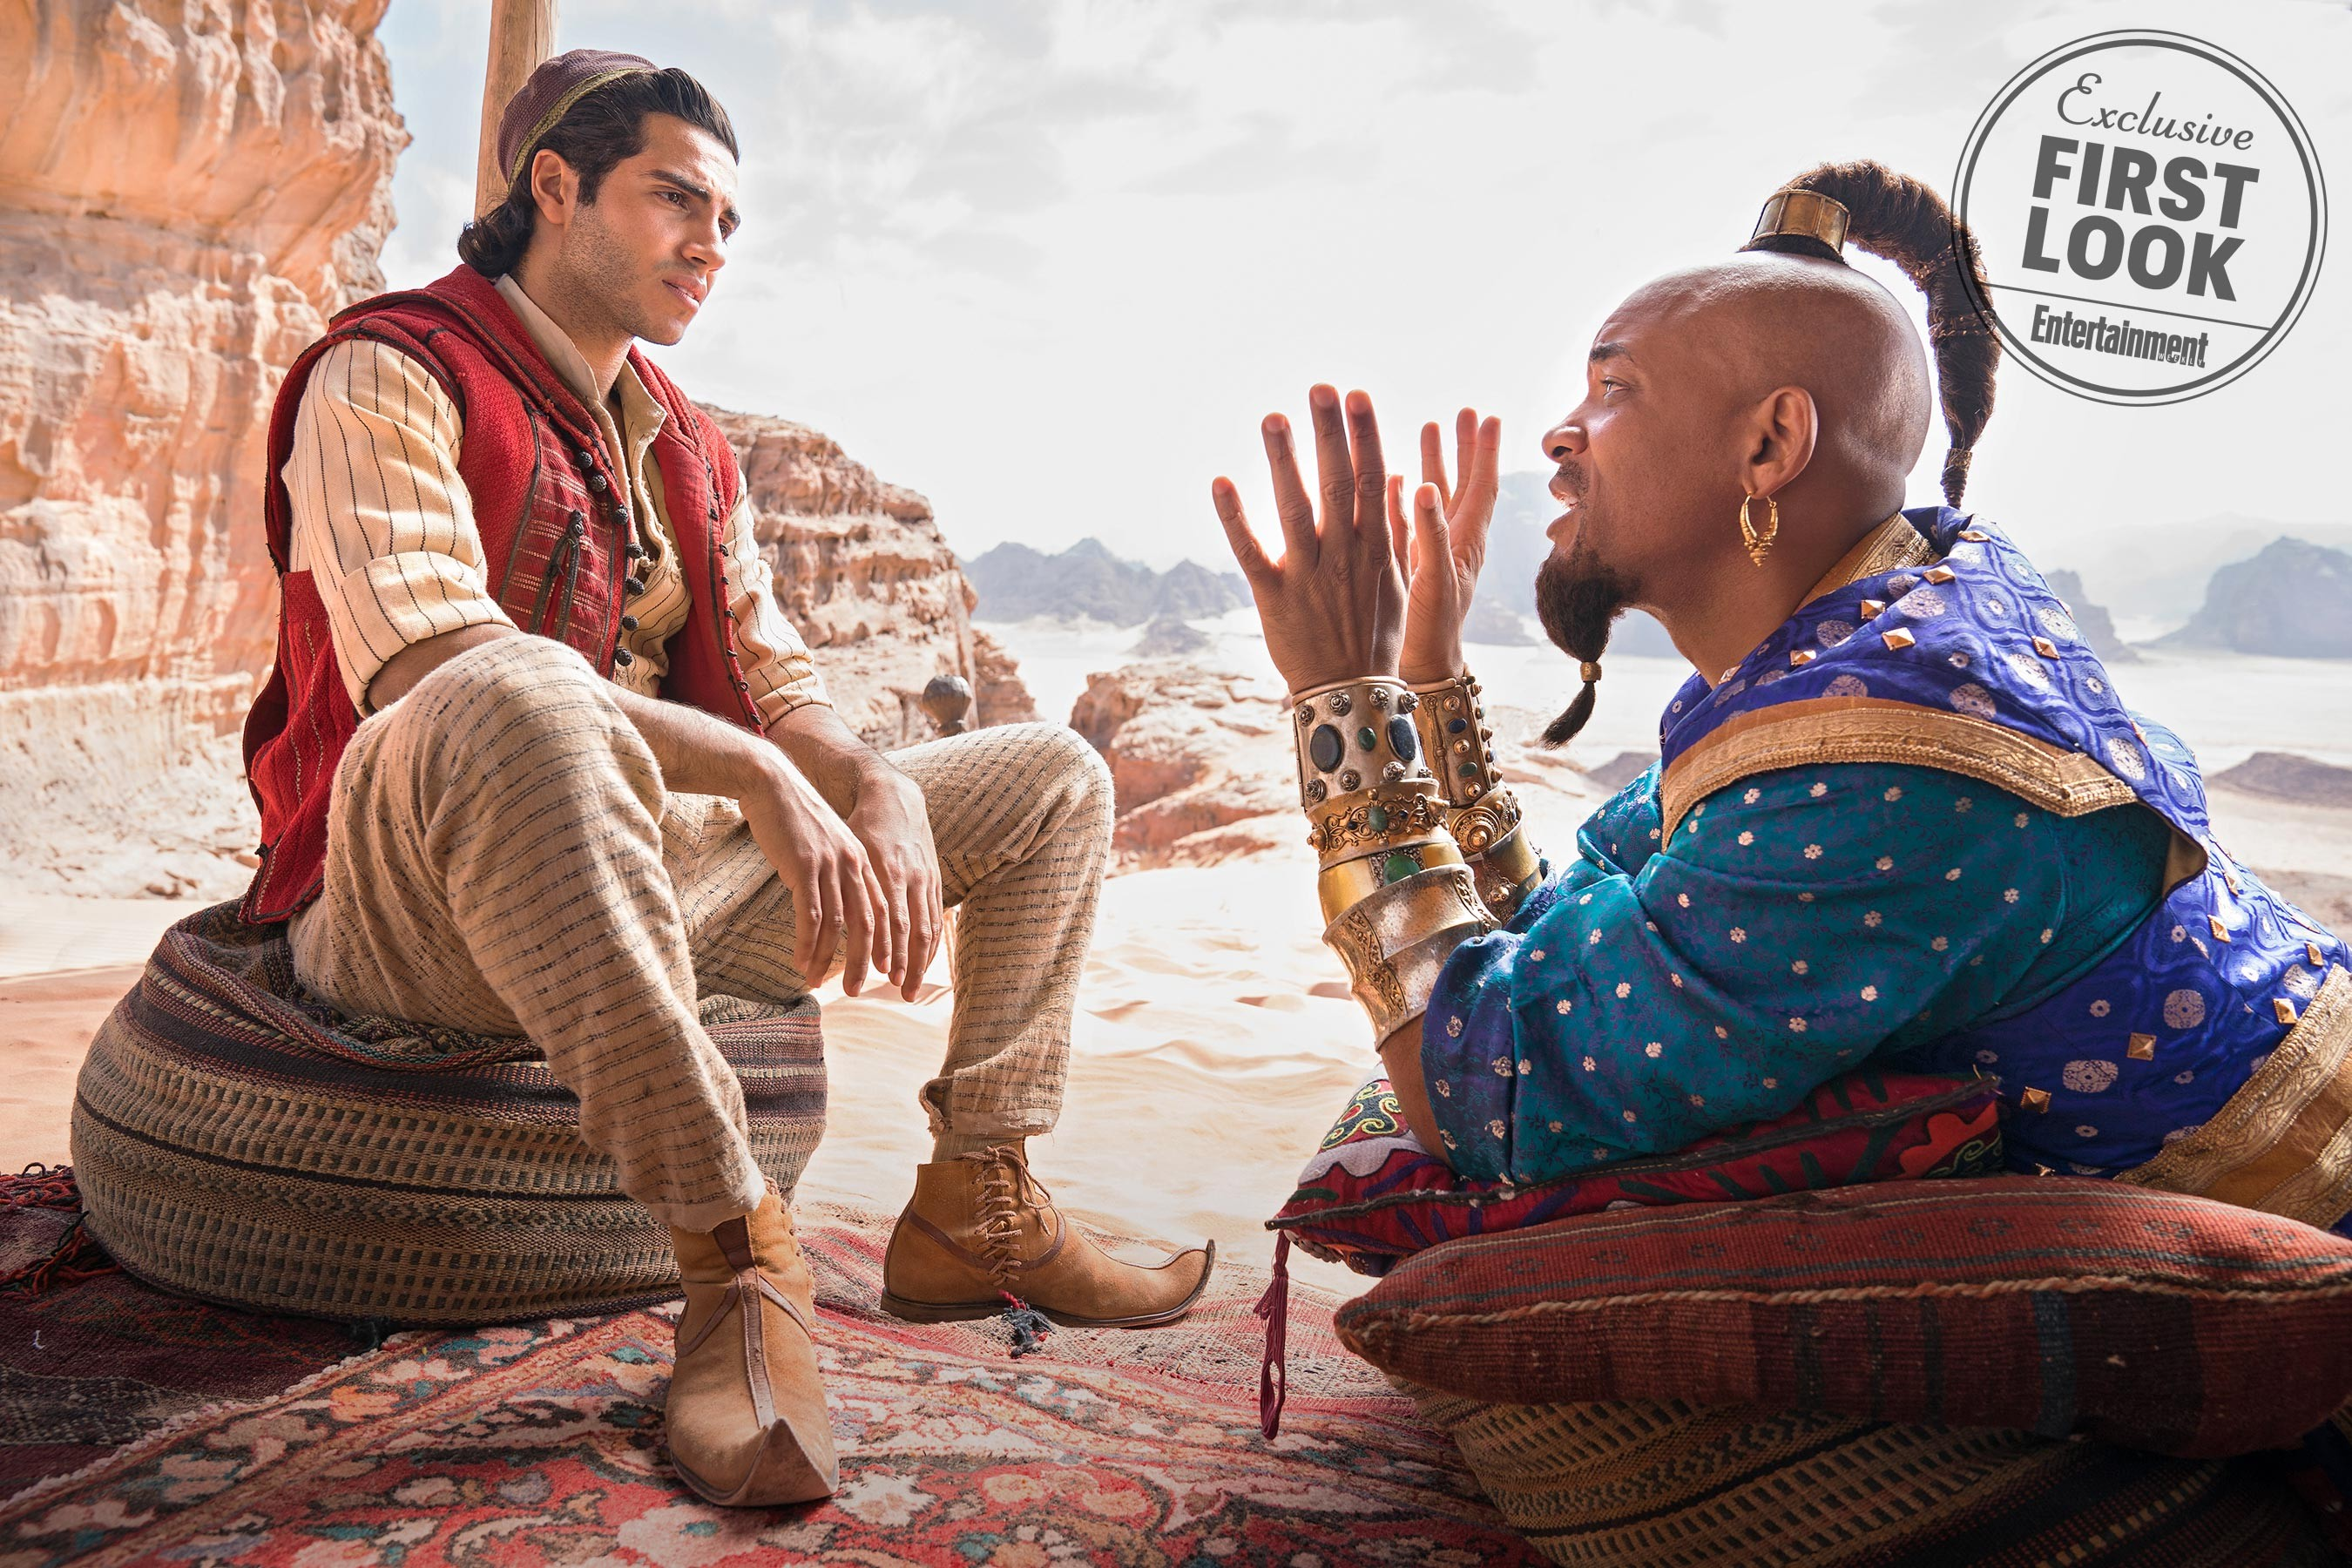 Aladdin e o Gênio da Lâmpada na nosa live-action (Foto: Entertainment Weekly)